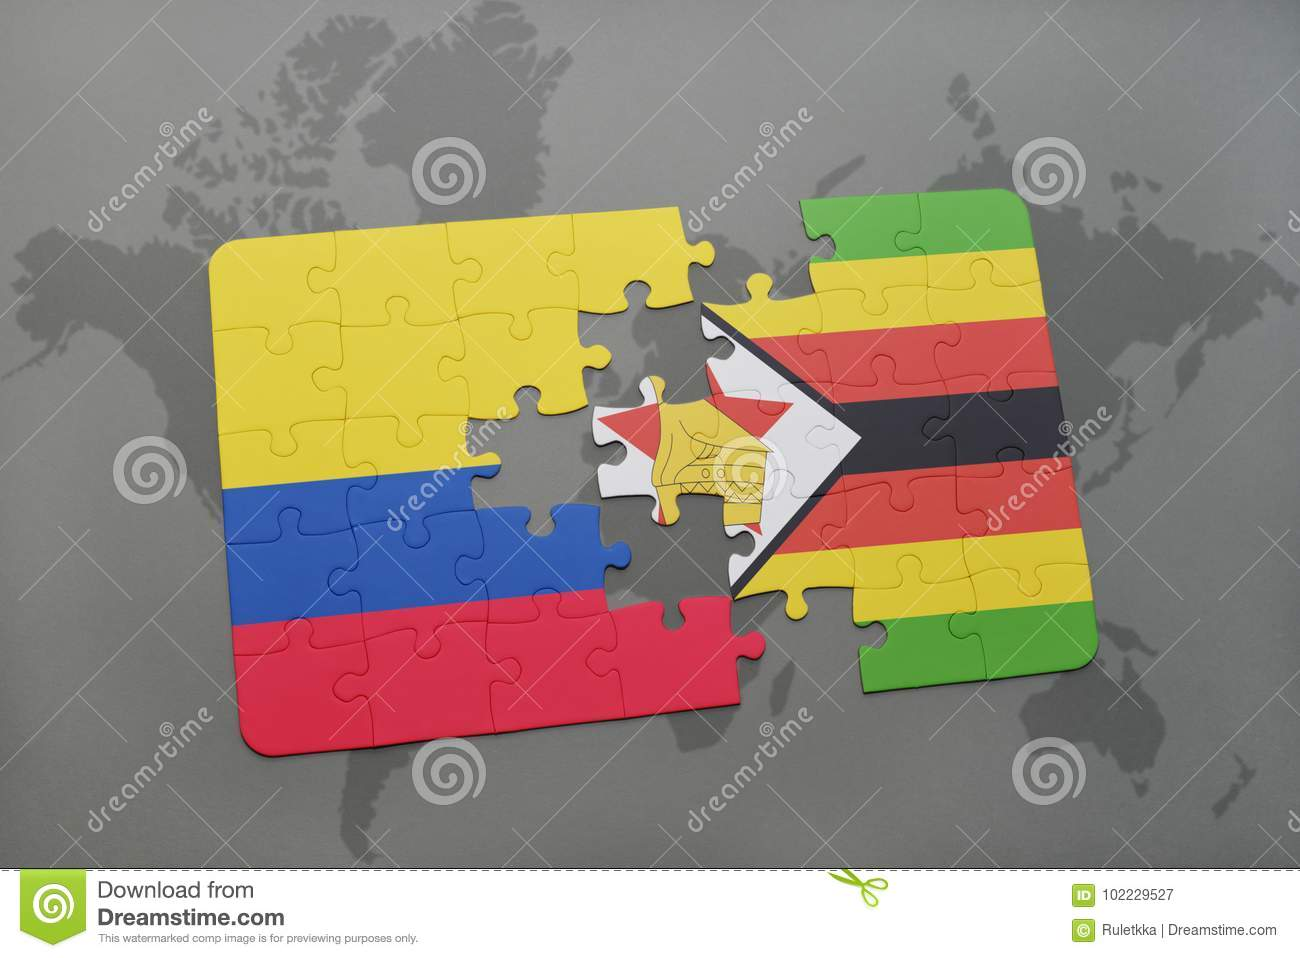 Puzzle With The National Flag Of Colombia And Zimbabwe On A World ...